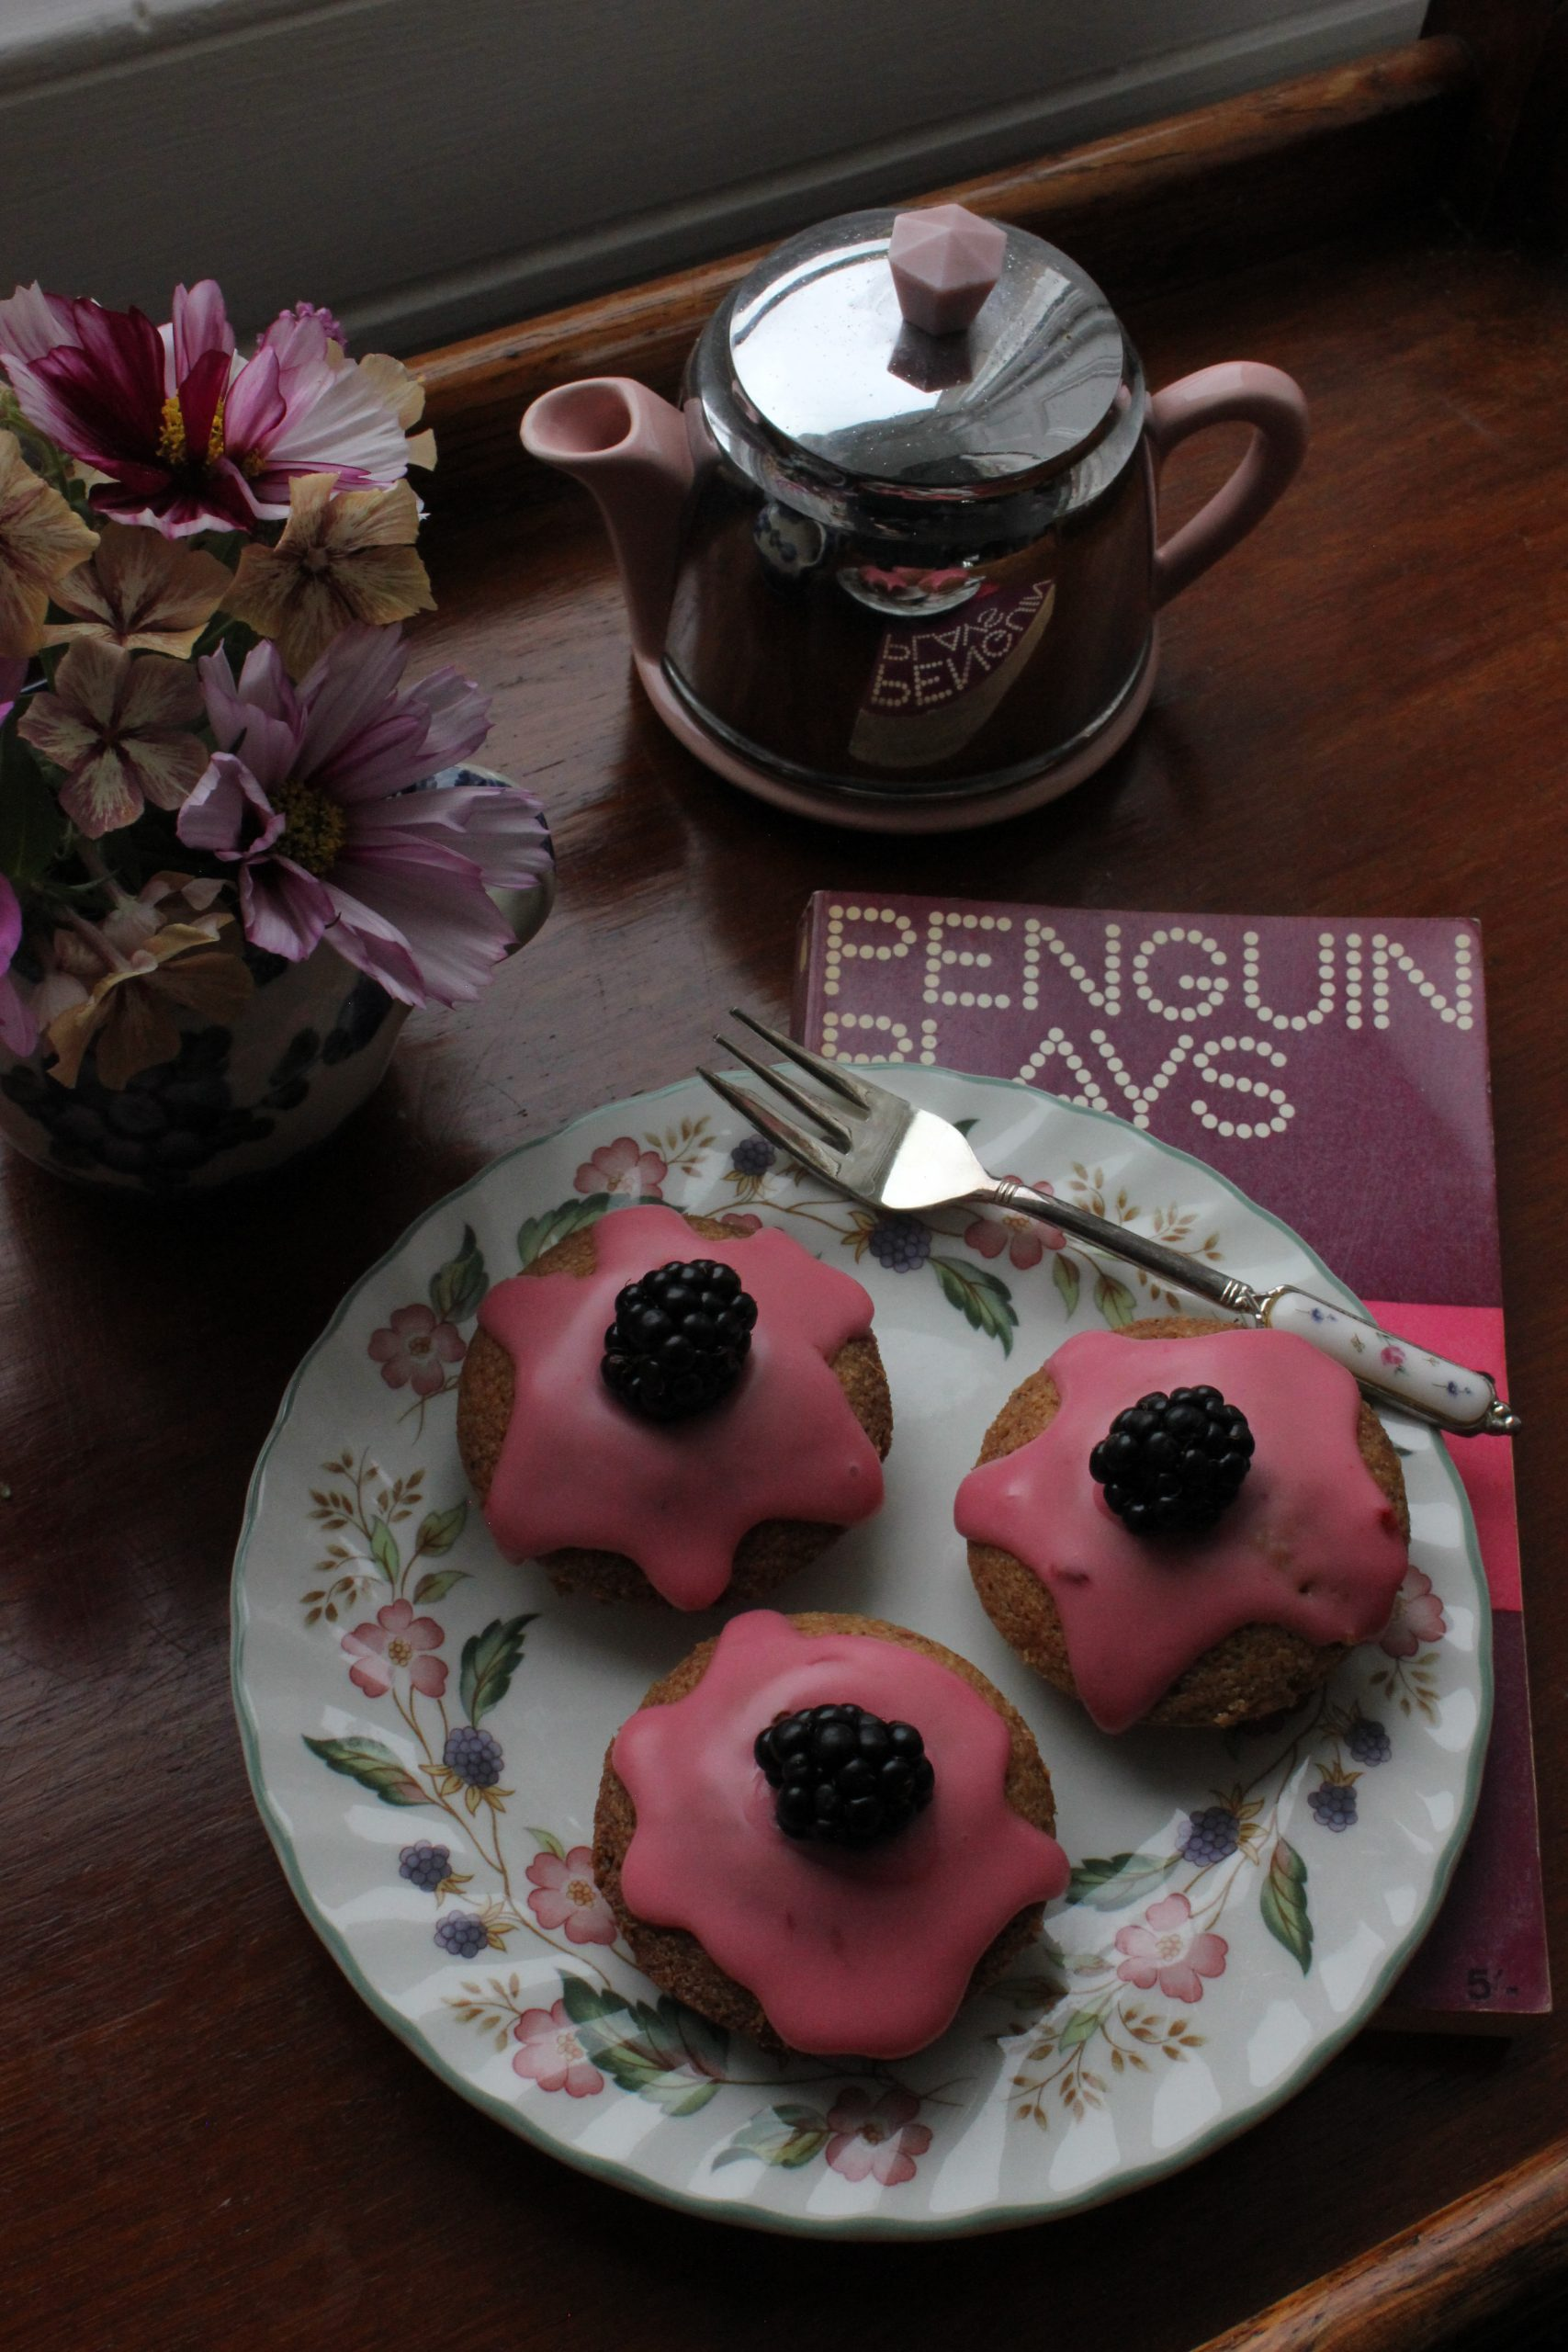 Blackberry and star anise friands